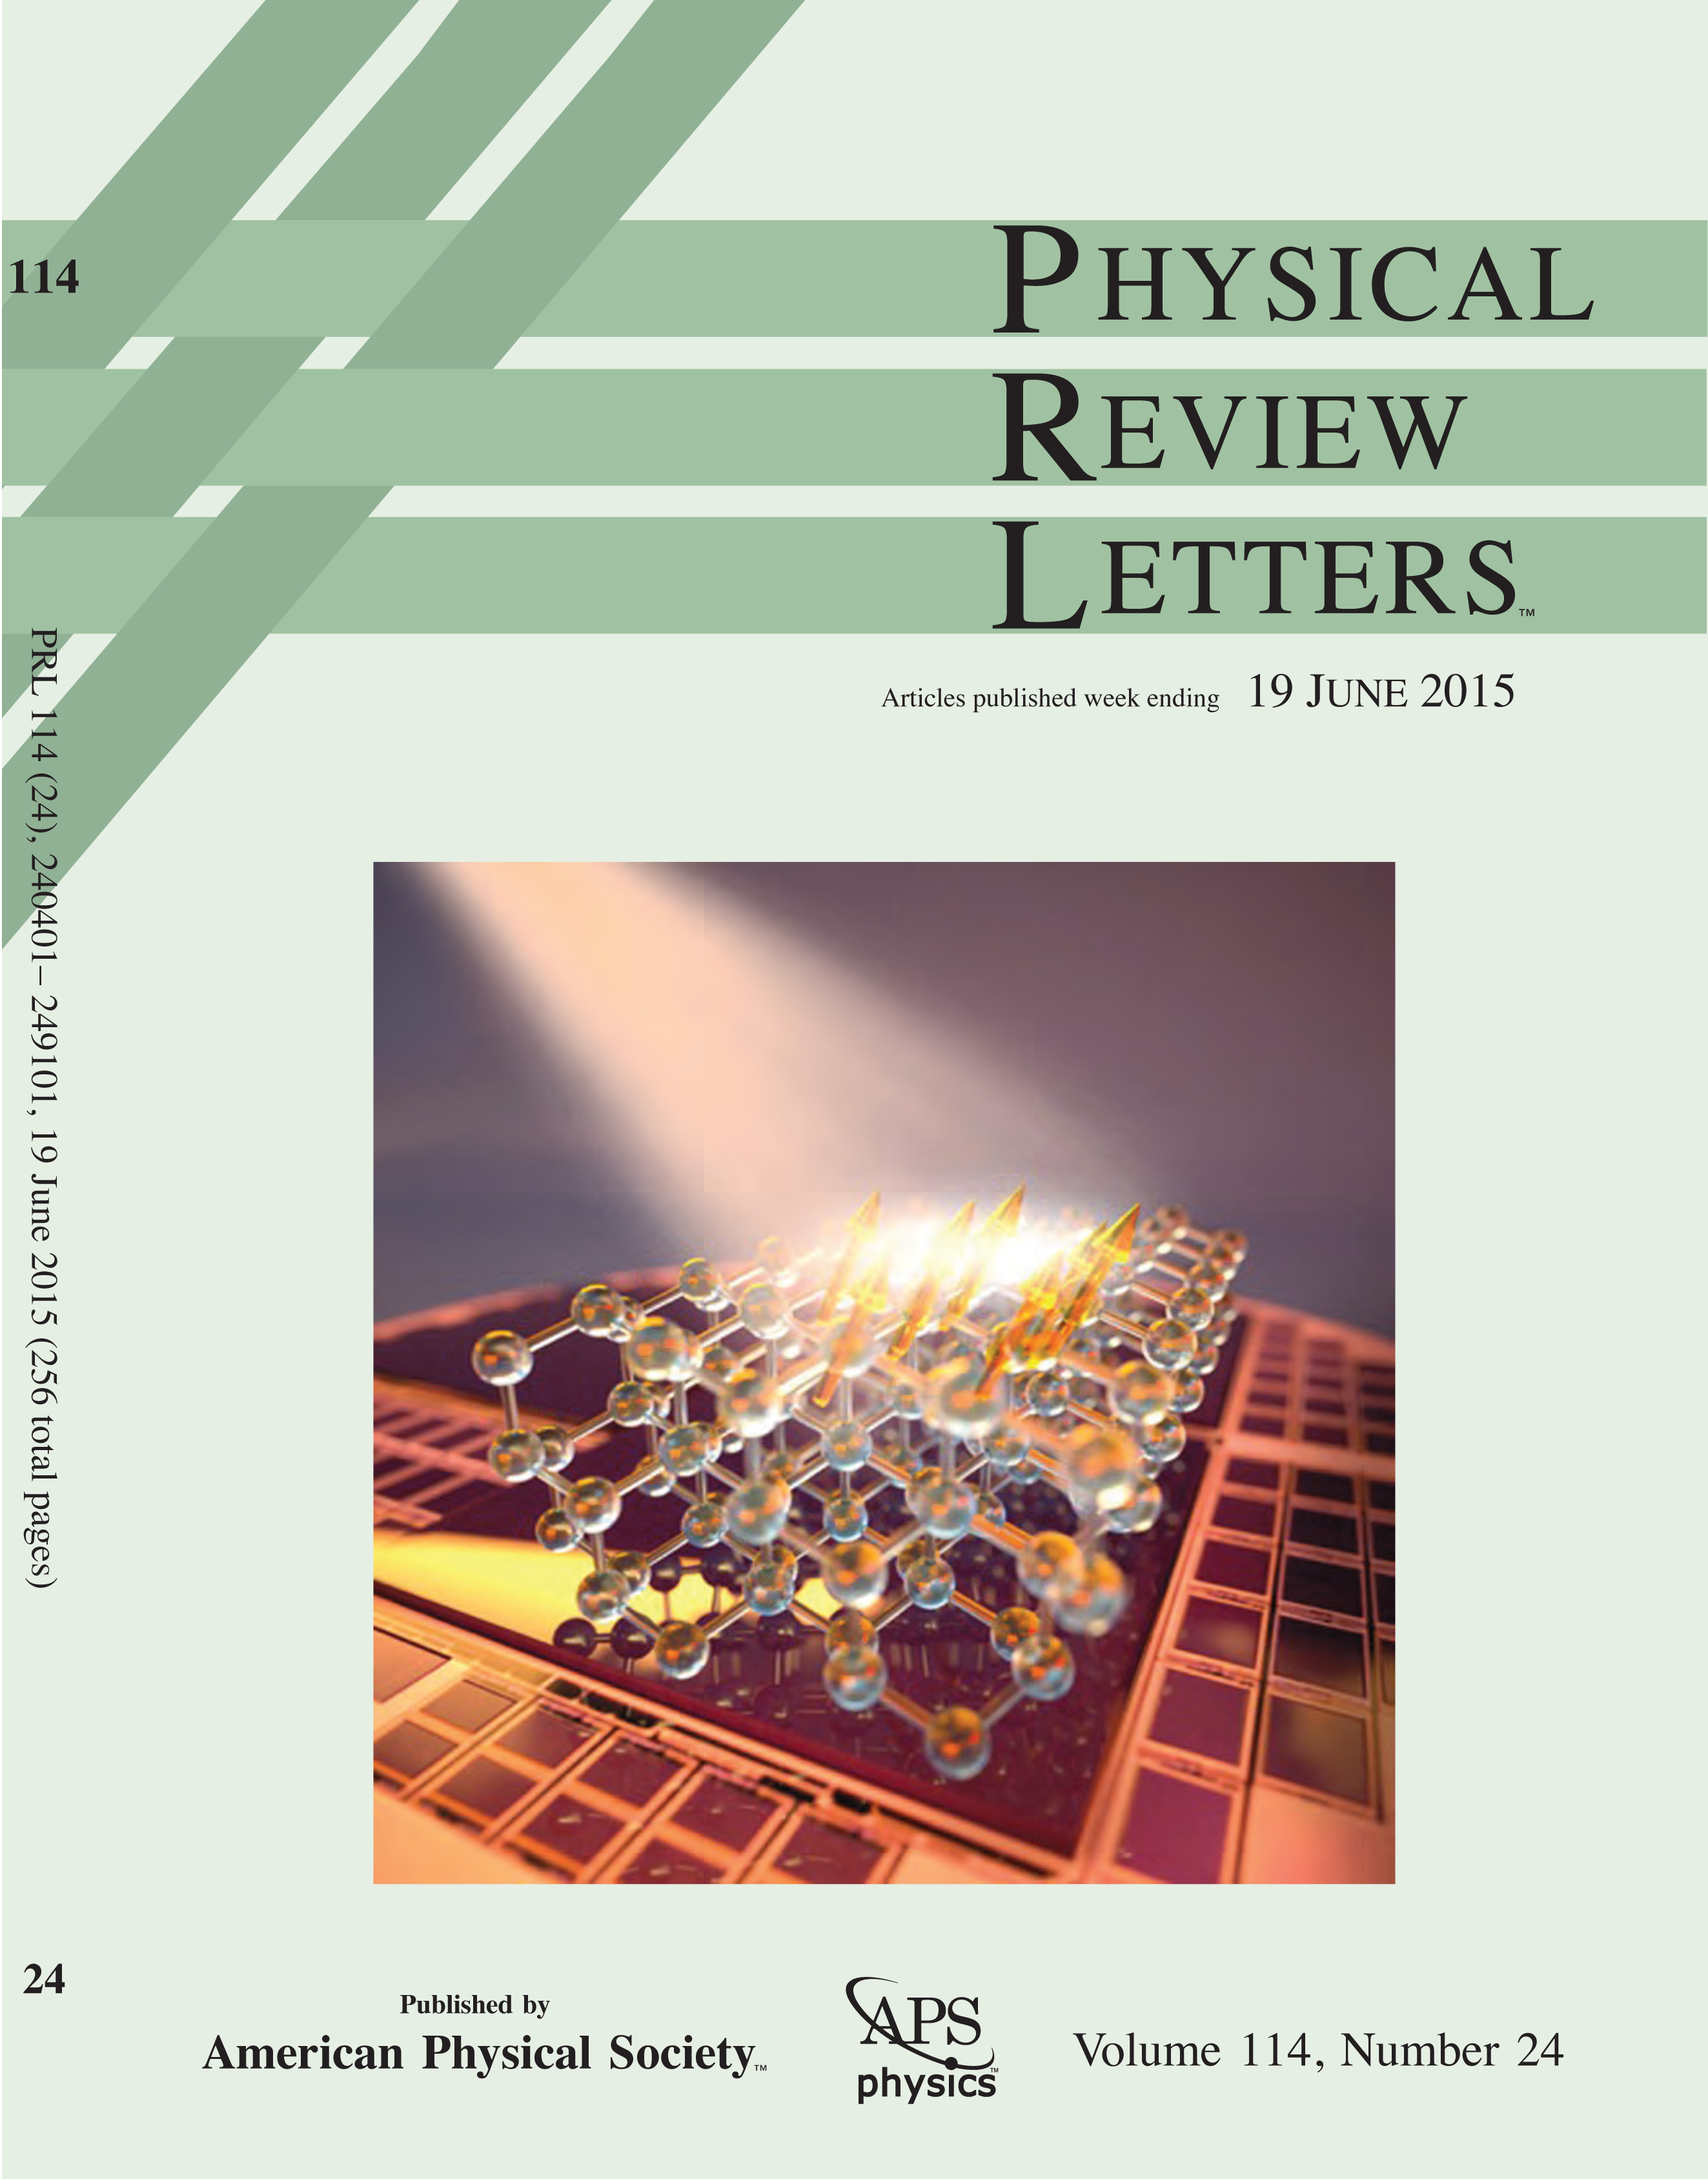 physical review letters publications 2005 awschalom institute for 41072